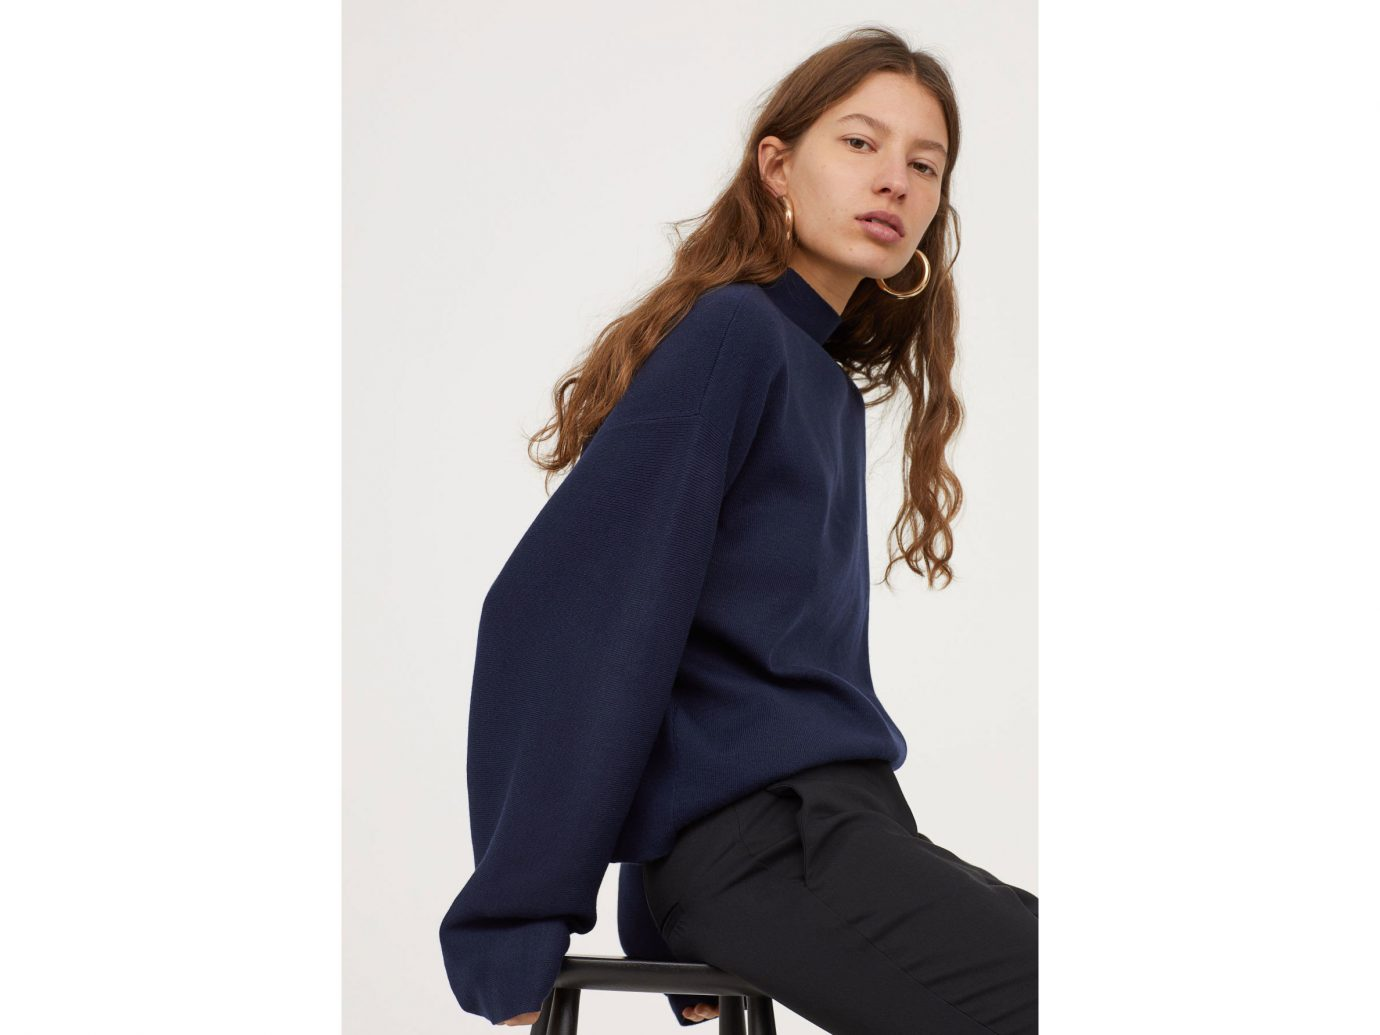 City NYC Style + Design Travel Shop person clothing sitting shoulder outerwear coat blazer sleeve neck posing jacket top formal wear trouser